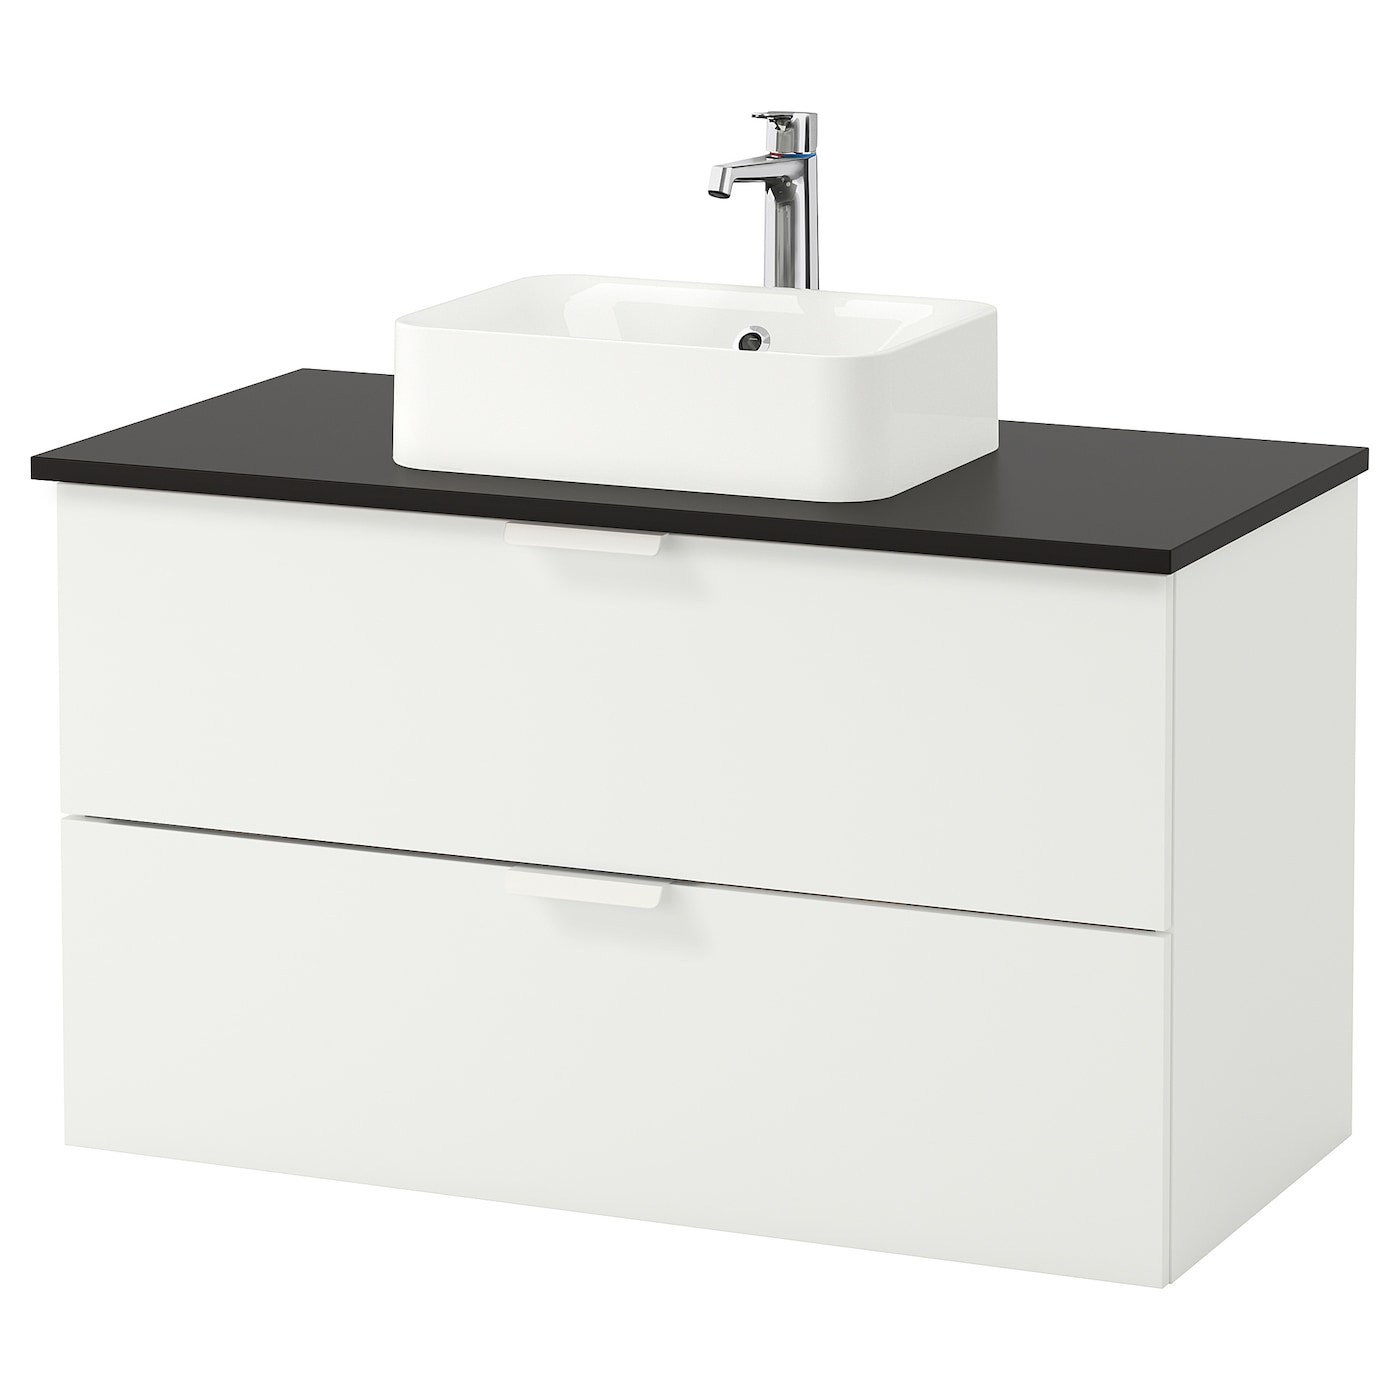 h rvik godmorgon tolken meuble lavabo av lav poser 45x32 blanc anthracite 102 x 49 x 72 cm ikea. Black Bedroom Furniture Sets. Home Design Ideas